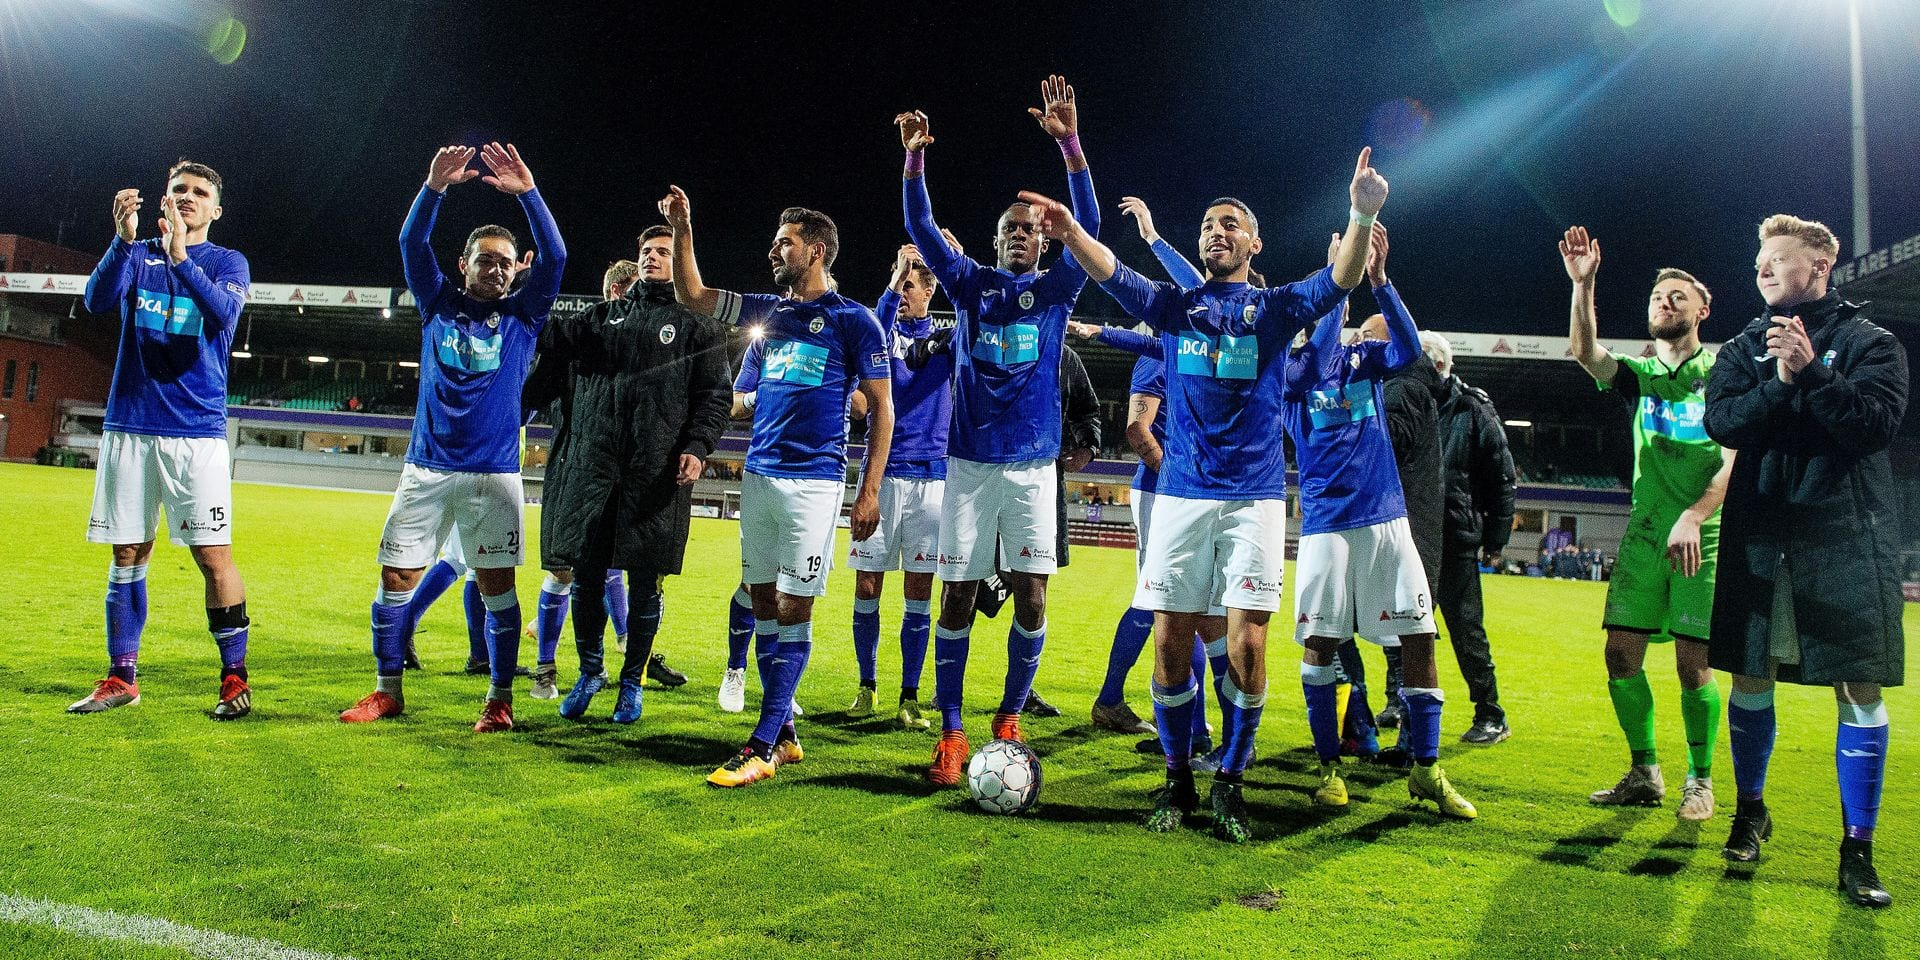 Beerschot's players celebrate after winning a soccer game between KFCO Beerschot-Wilrijk and KVC Westerlo, Saturday 04 May 2019 in Antwerp, on day 7 (out of 10) of the Play-off 2A of the 'Jupiler Pro League' Belgian soccer championship. BELGA PHOTO JASPER JACOBS